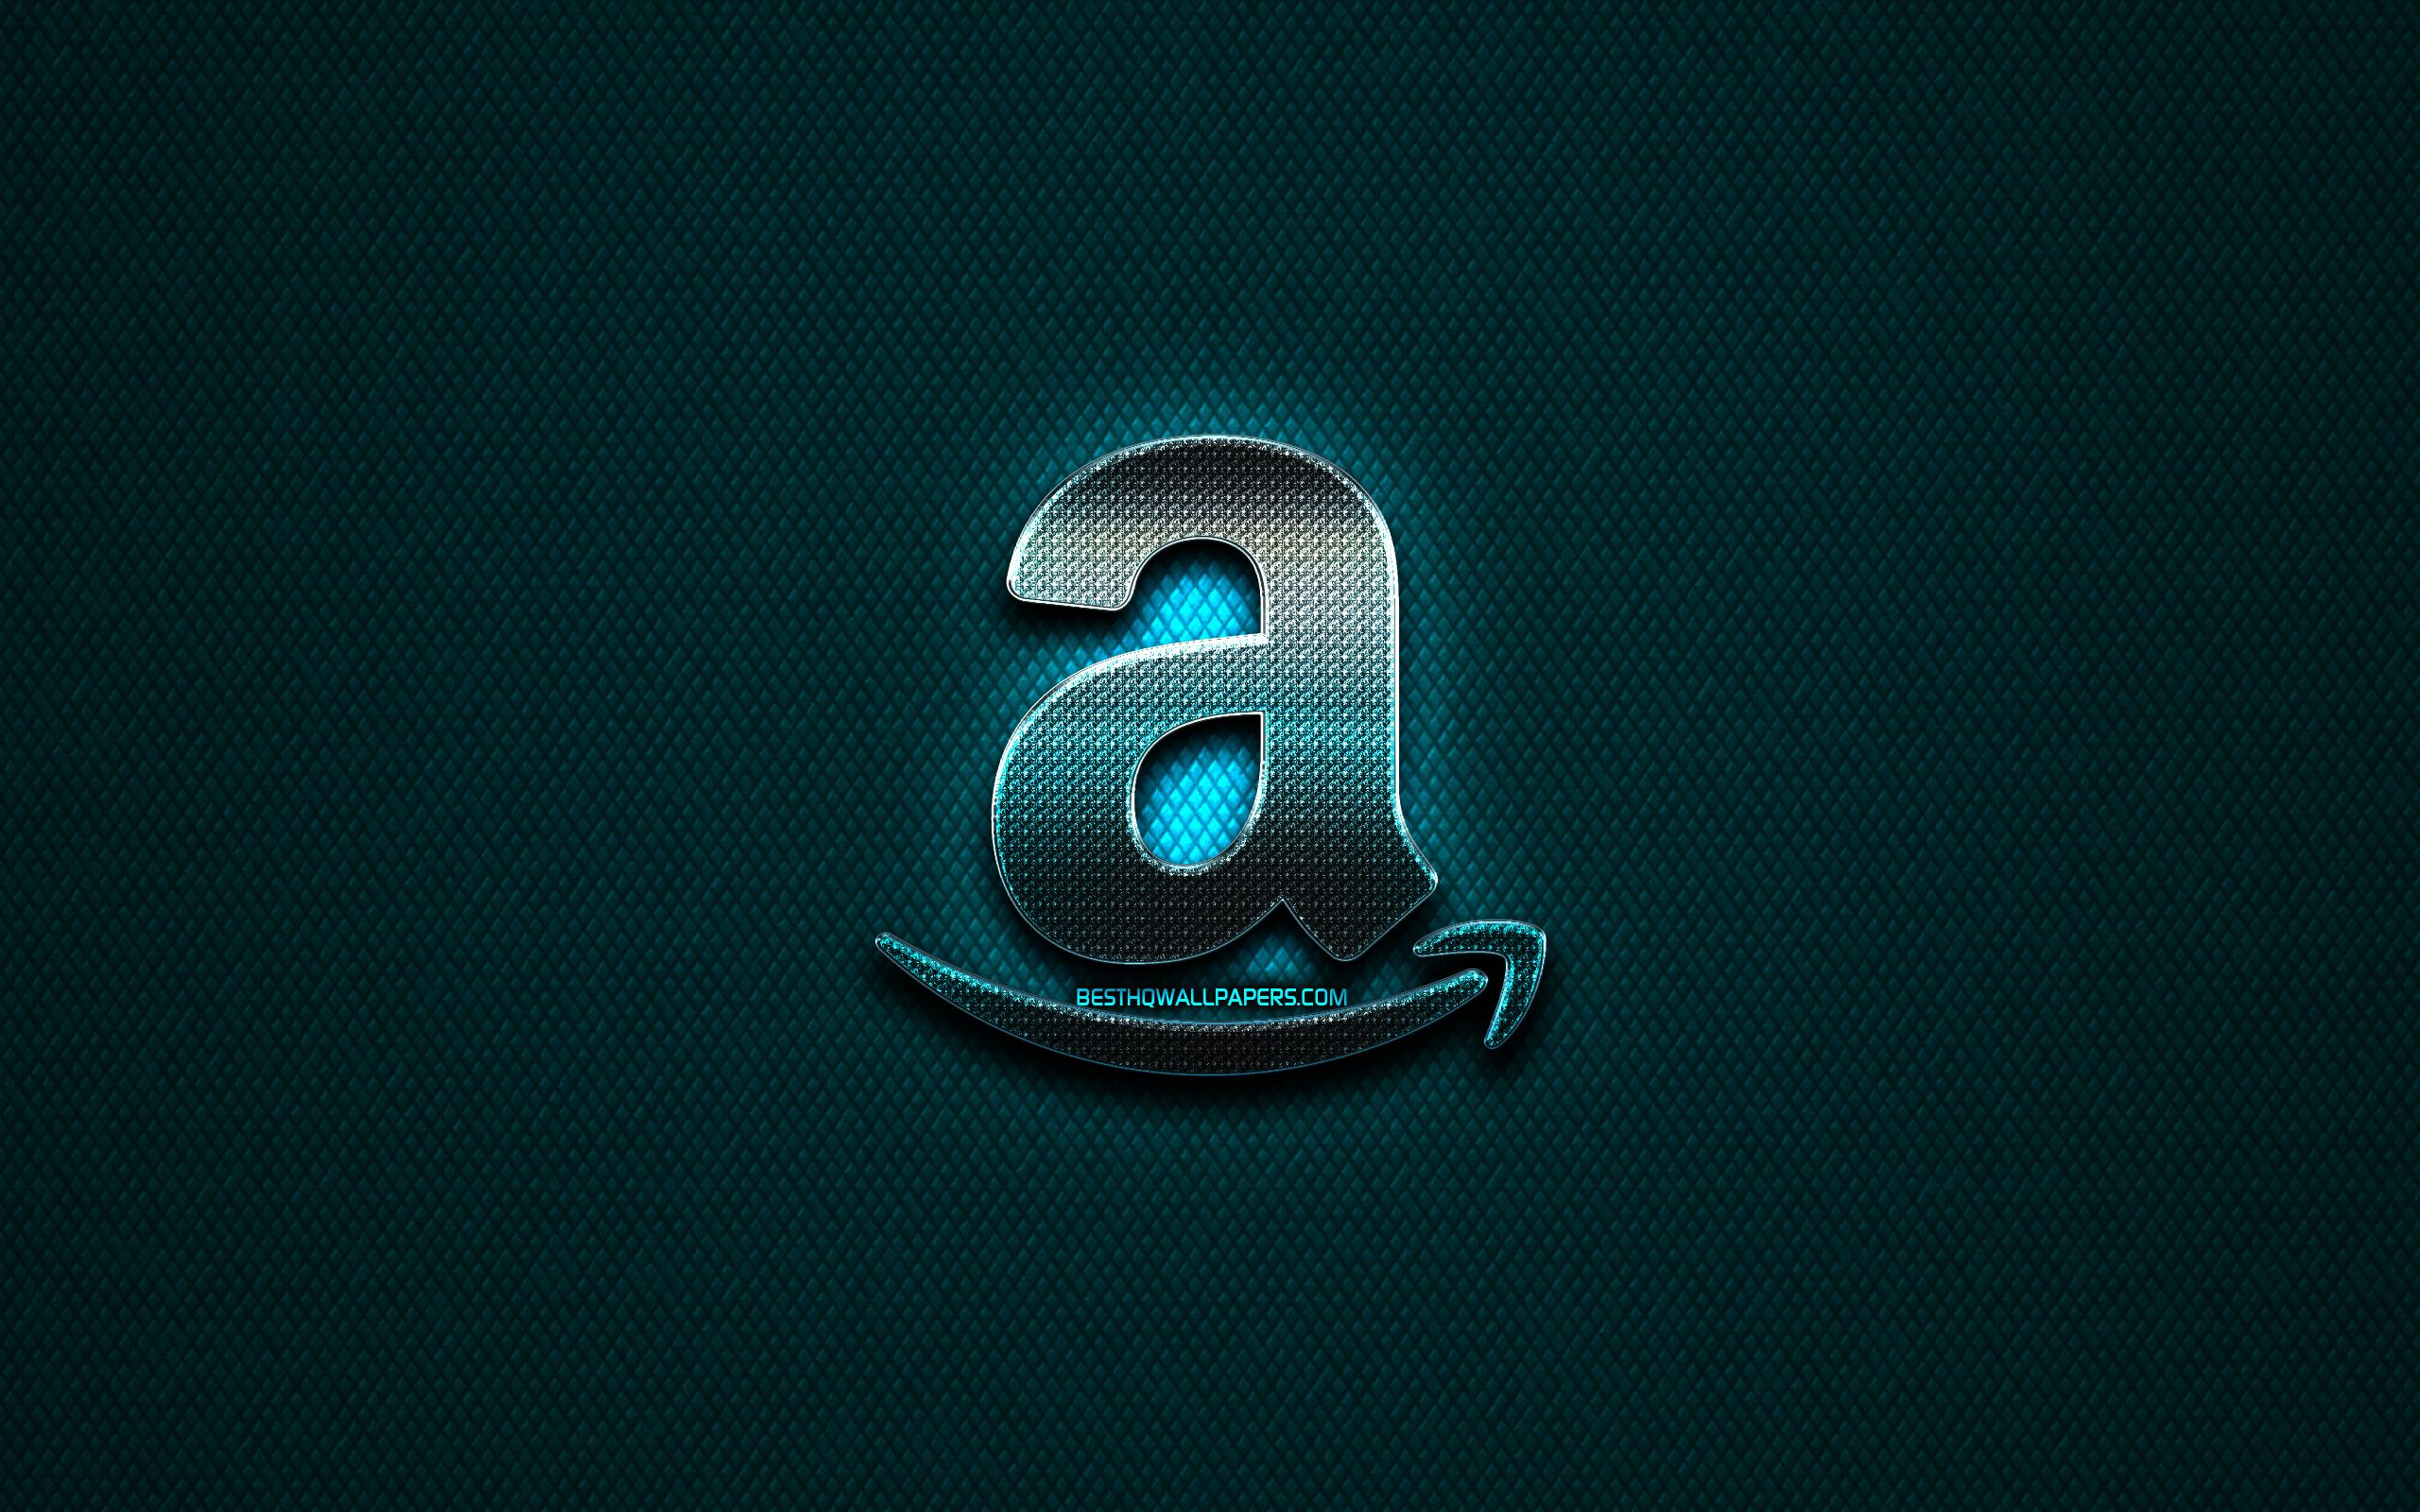 amazon for wallpaper